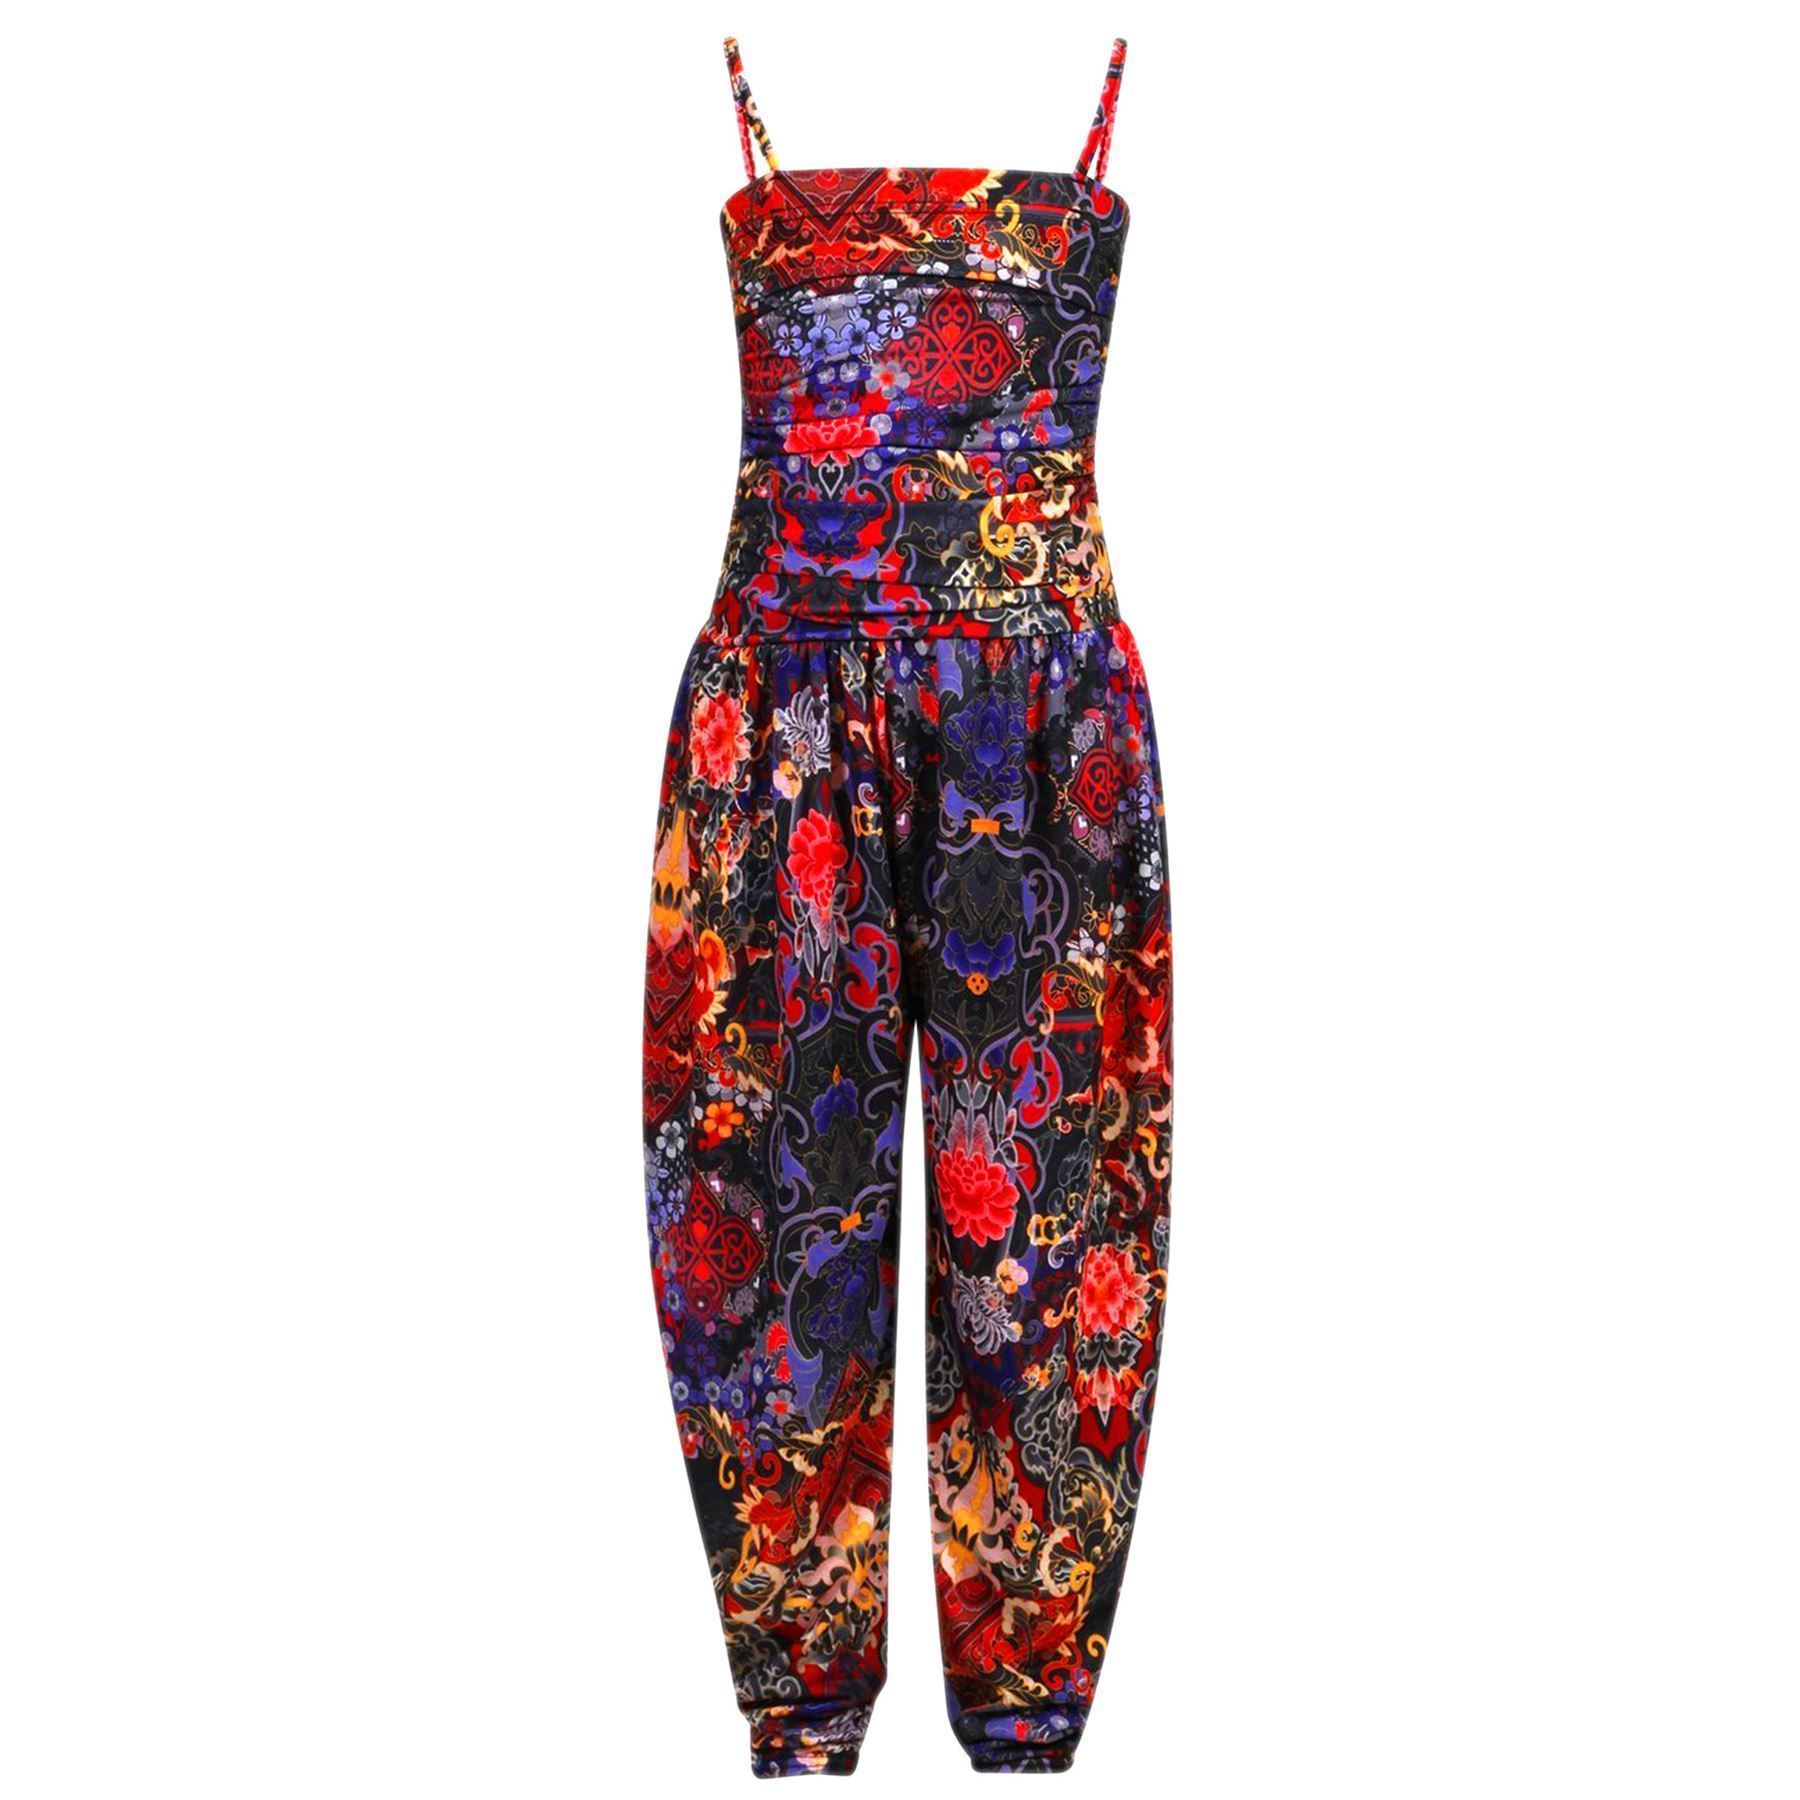 Girls Jumpsuit Kids Floral Leopard Aztec Tribal Print Trendy Playsuit All In One | EBay